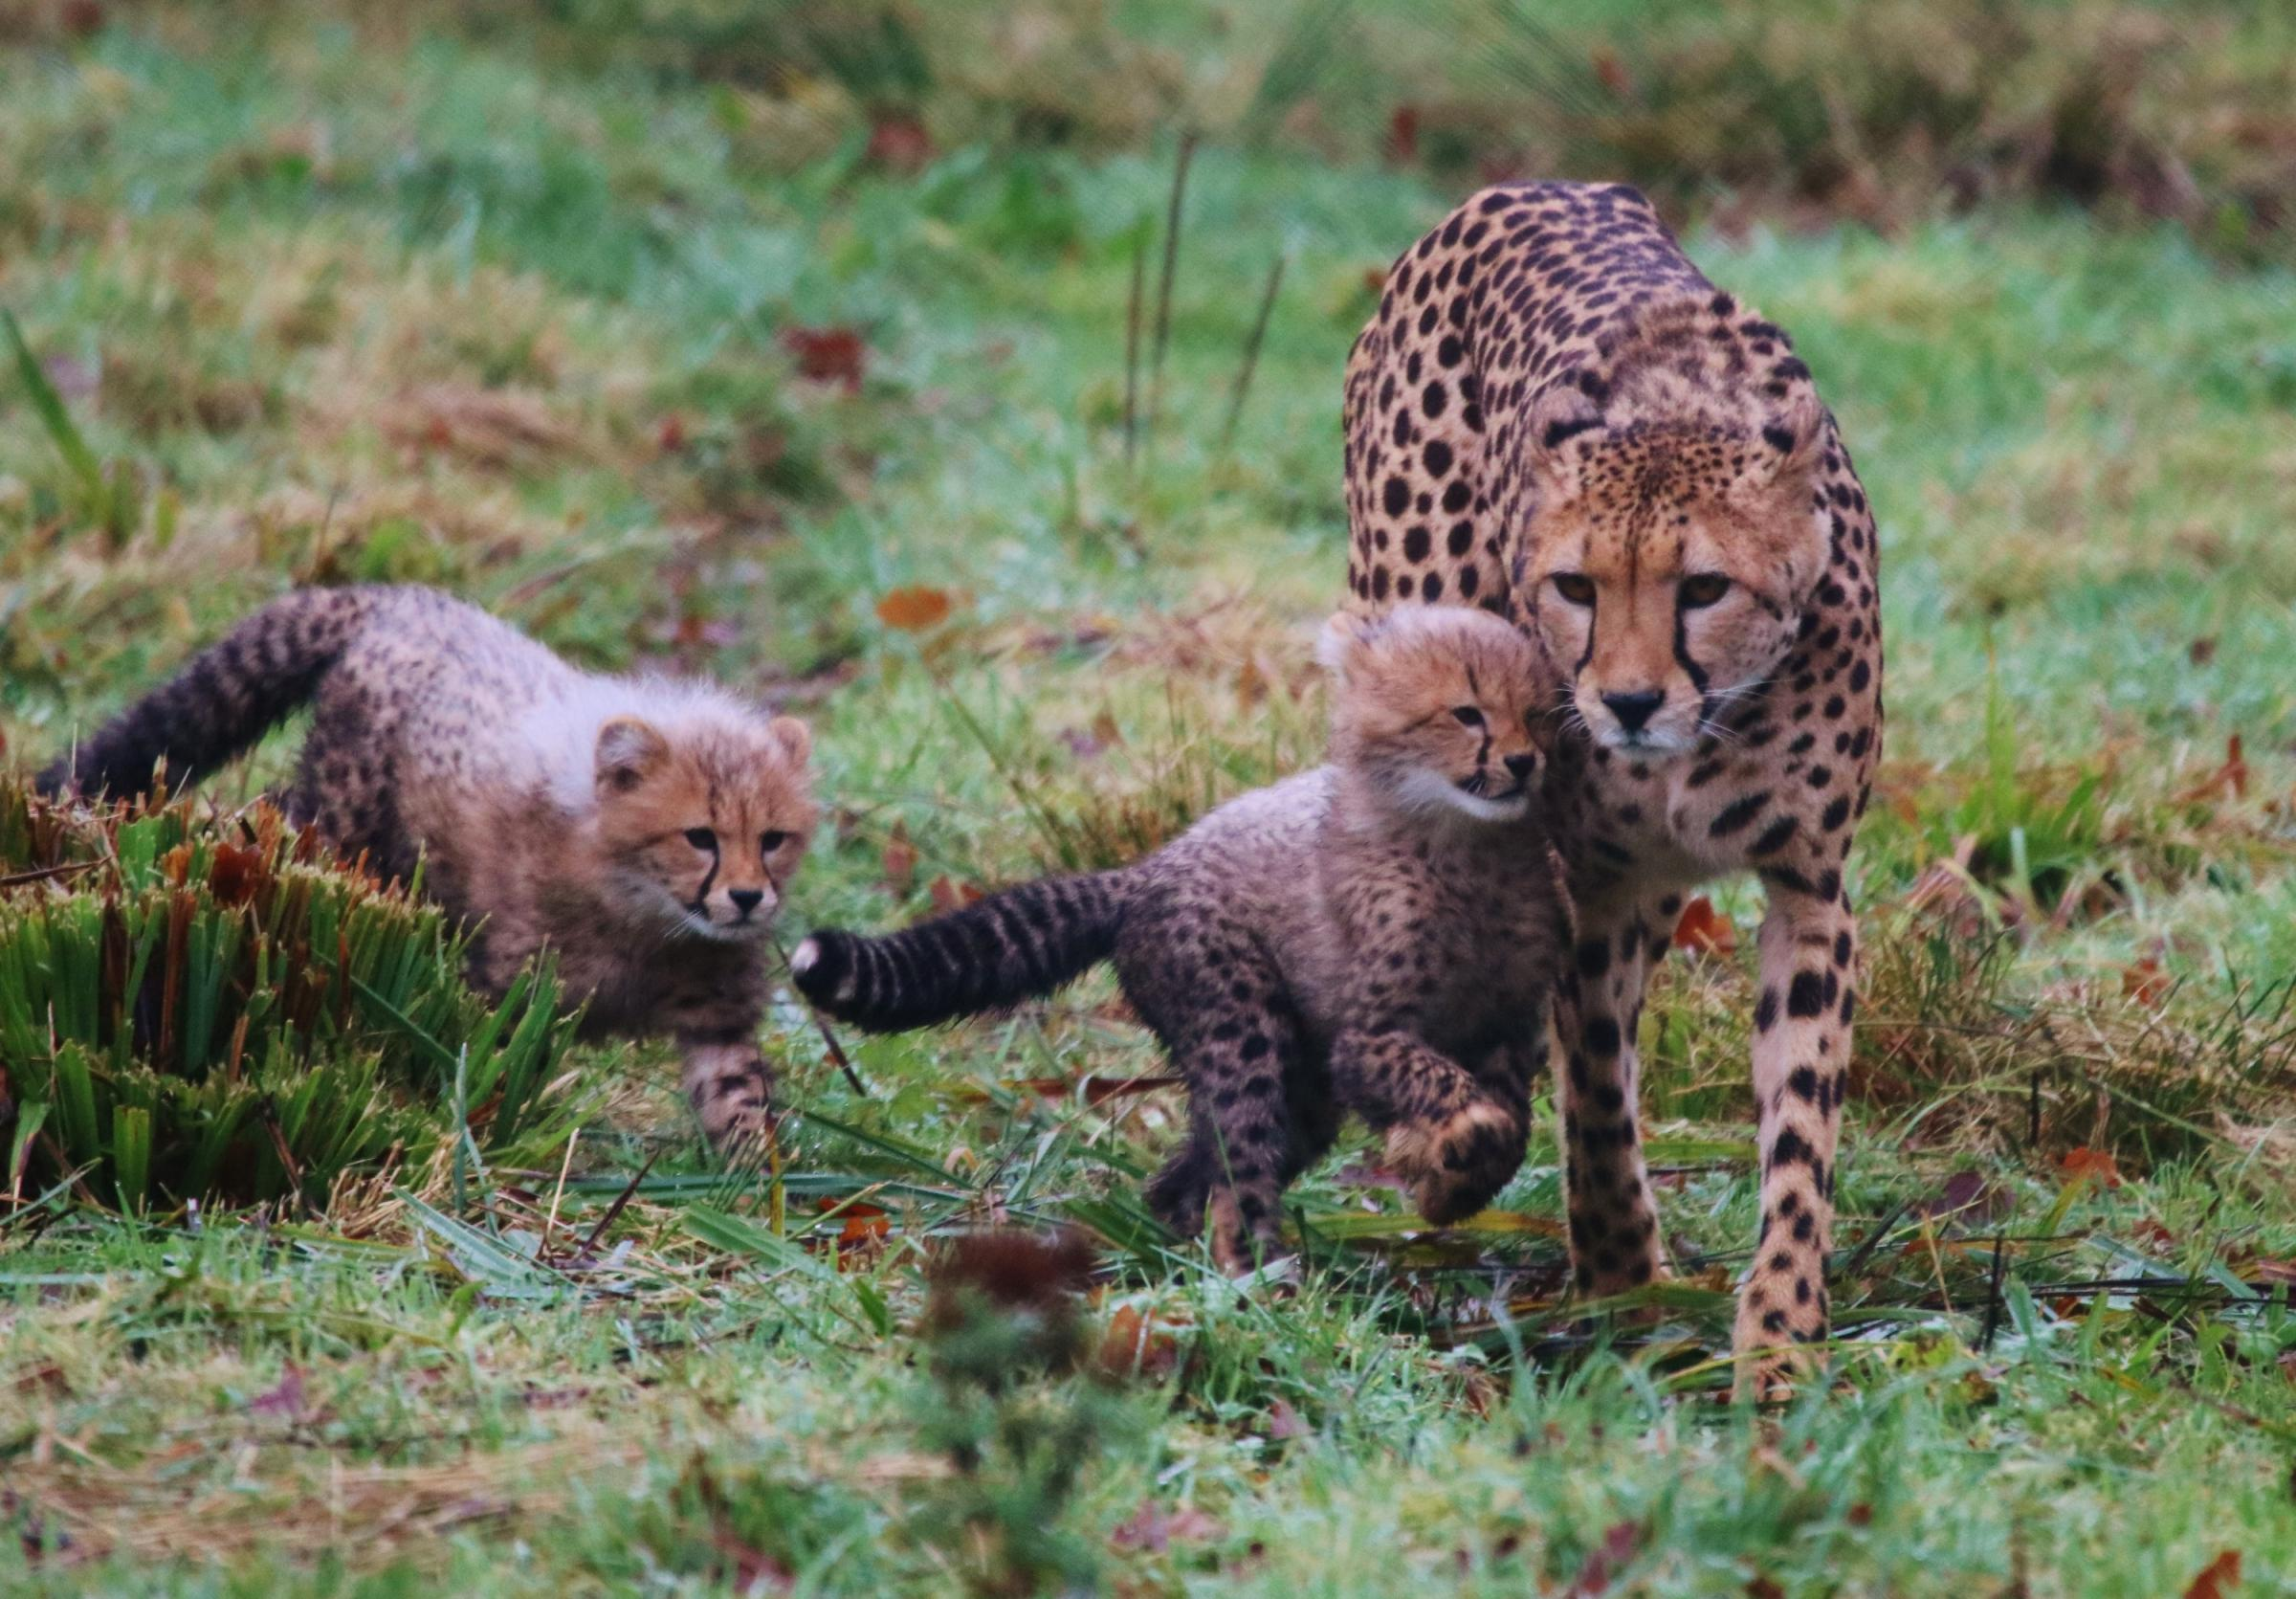 A cheetah and two cubs.